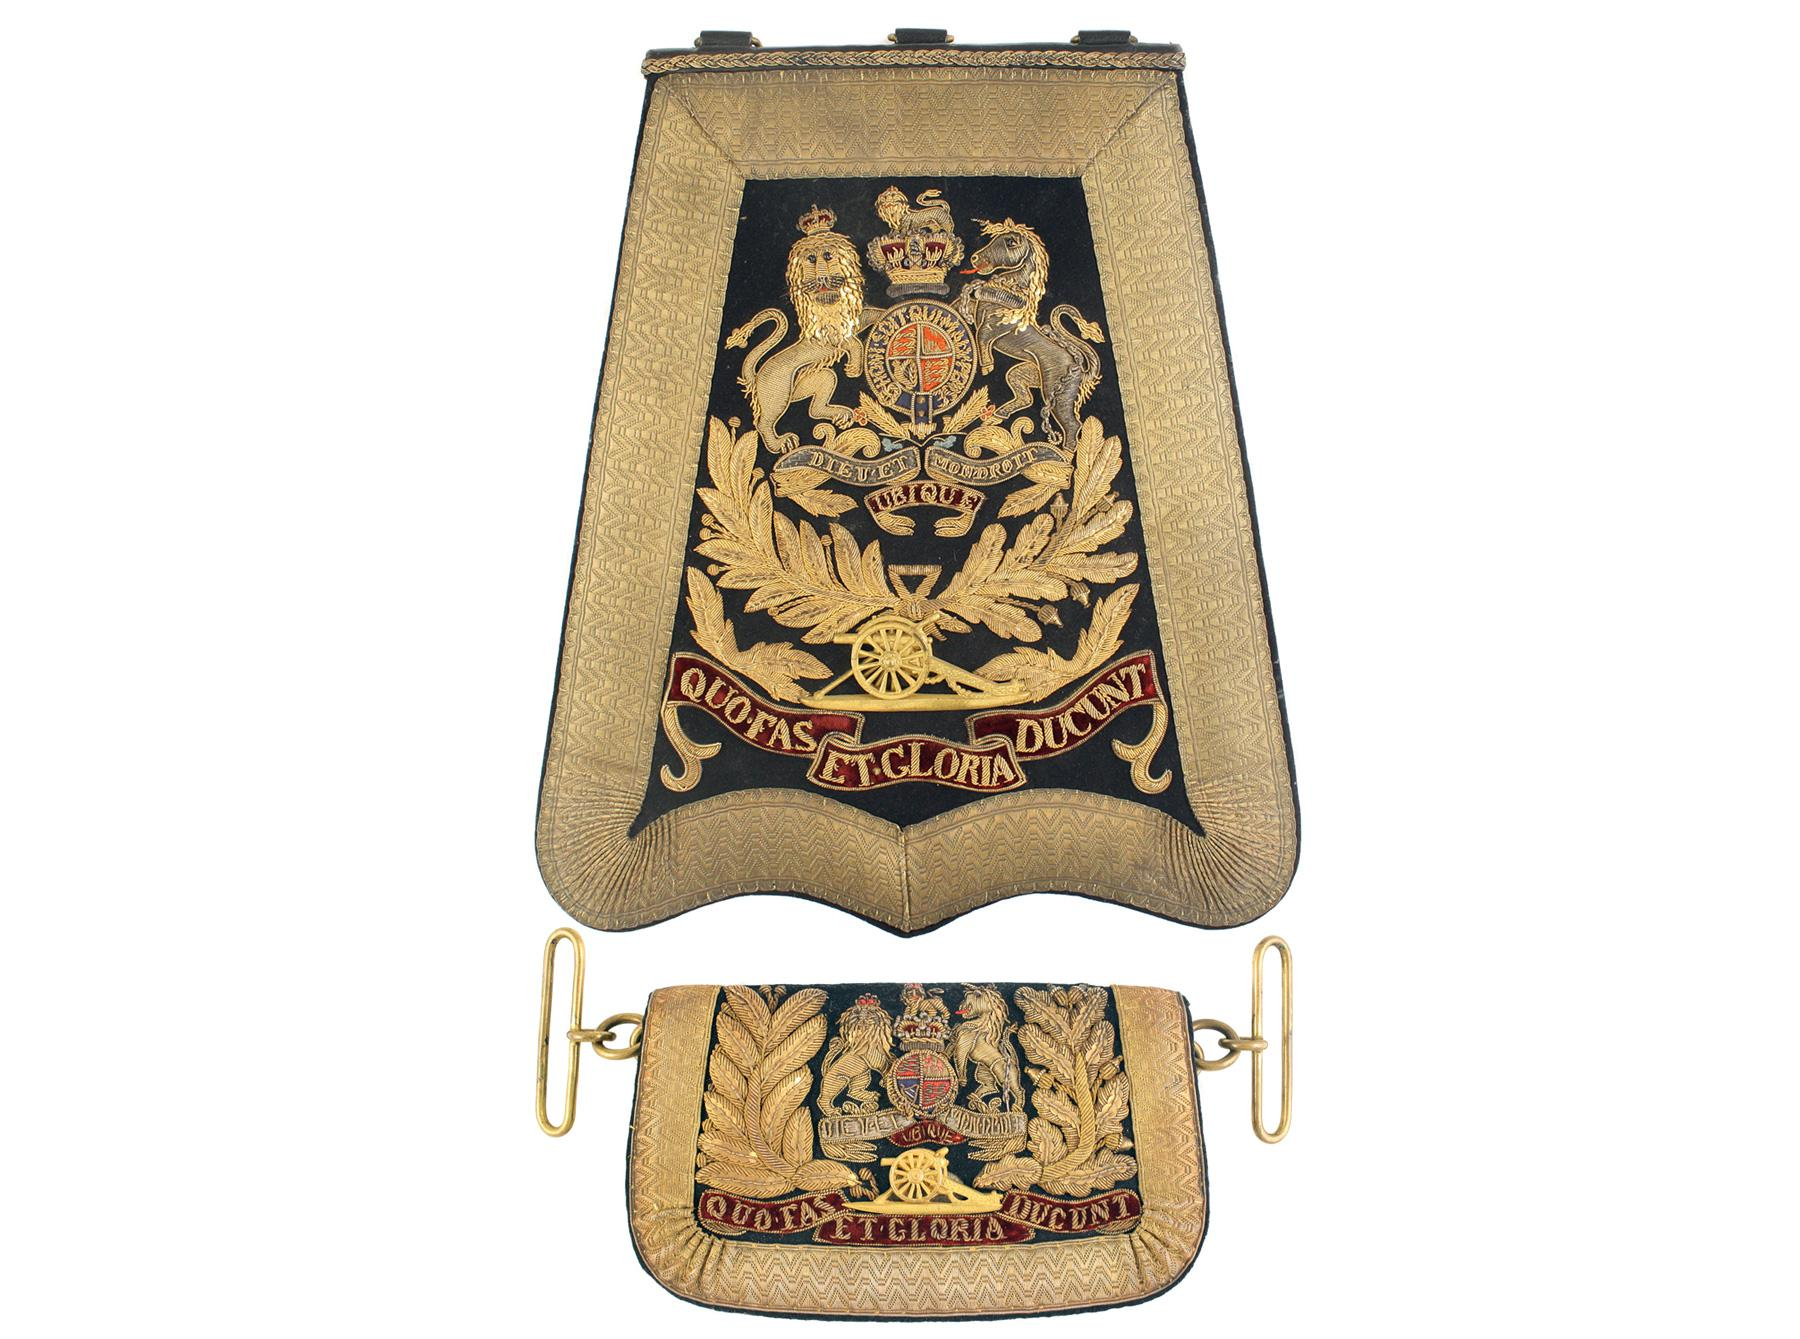 A Royal Artillery Sabretache and Pouch